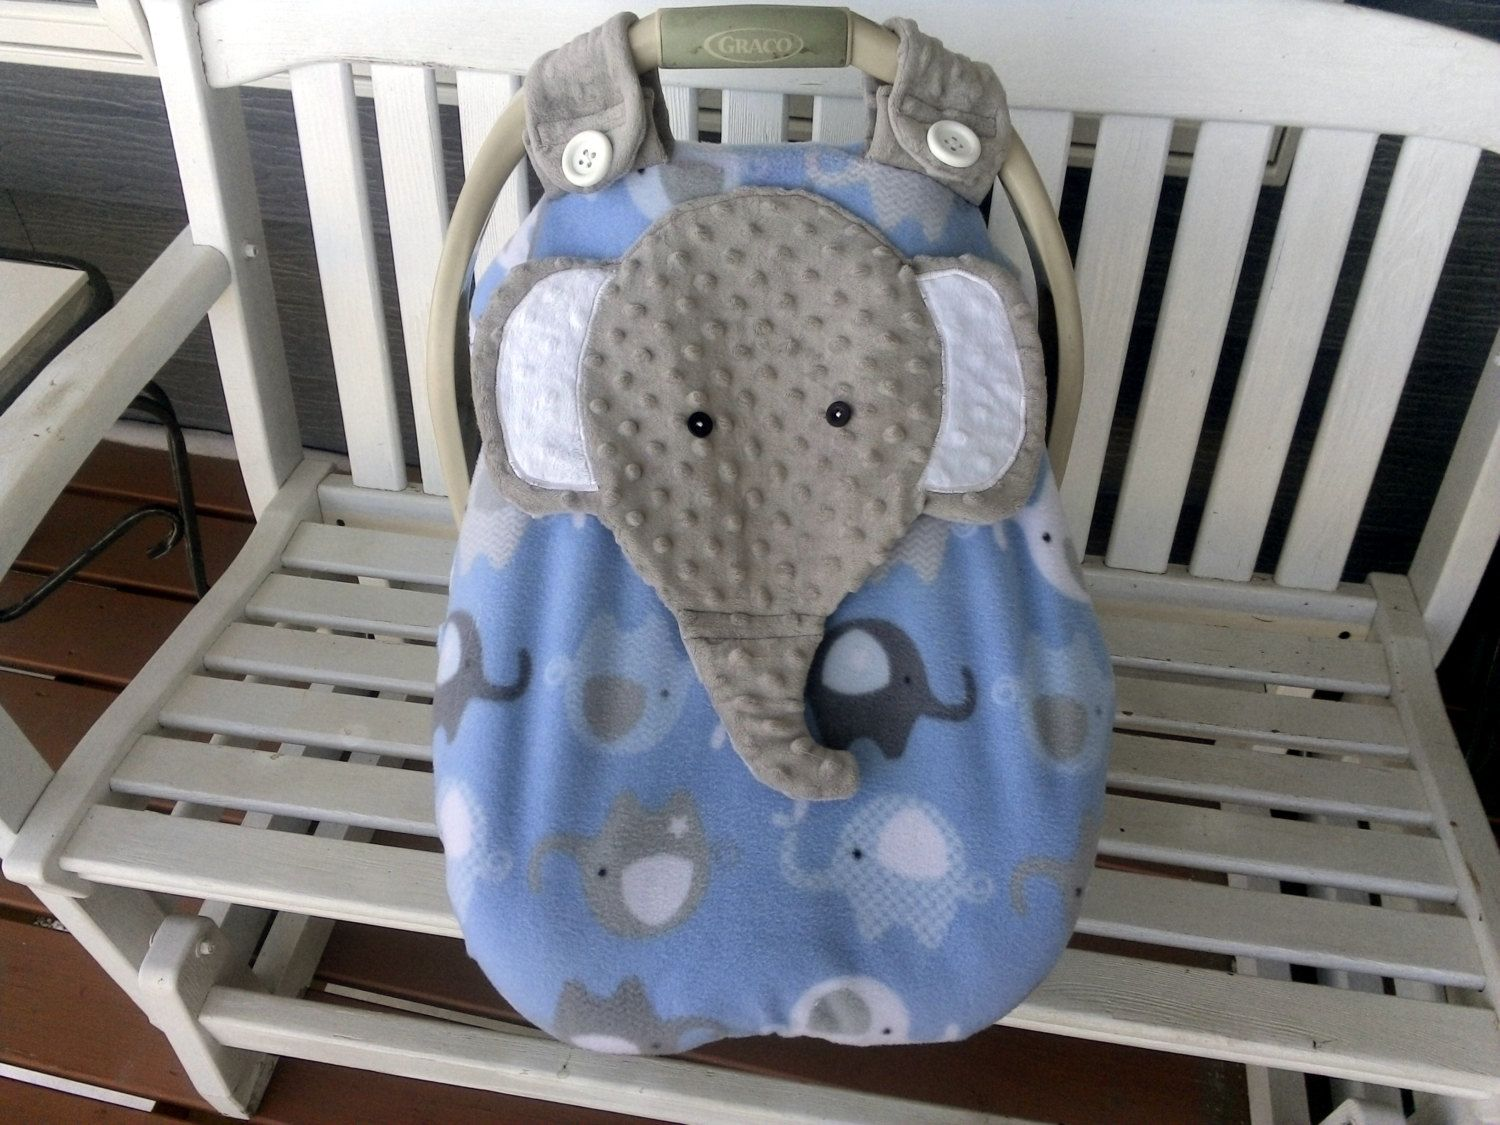 Baby bed like car seat - Made To Order Boy S Fitted Fleece Elephant Car Seat Canopy With Peek A Boo Opening Don T Like This I Can Make One You Do Like